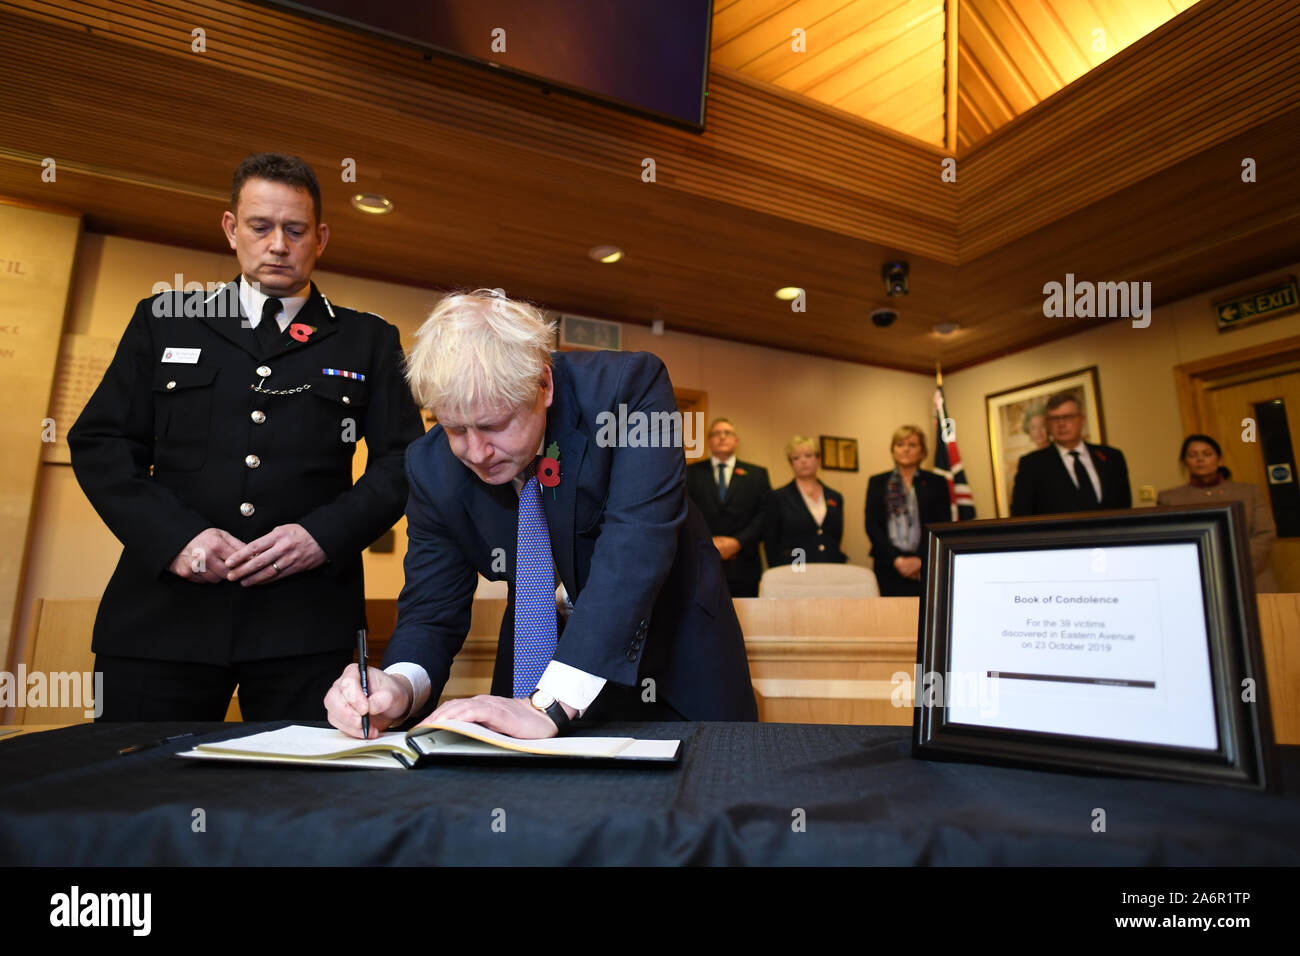 Prime Minister Boris Johnson signs a book of condolence during a visit to Thurrock Council Offices in Essex after the bodies of 39 people were found in a lorry container last week. Stock Photo